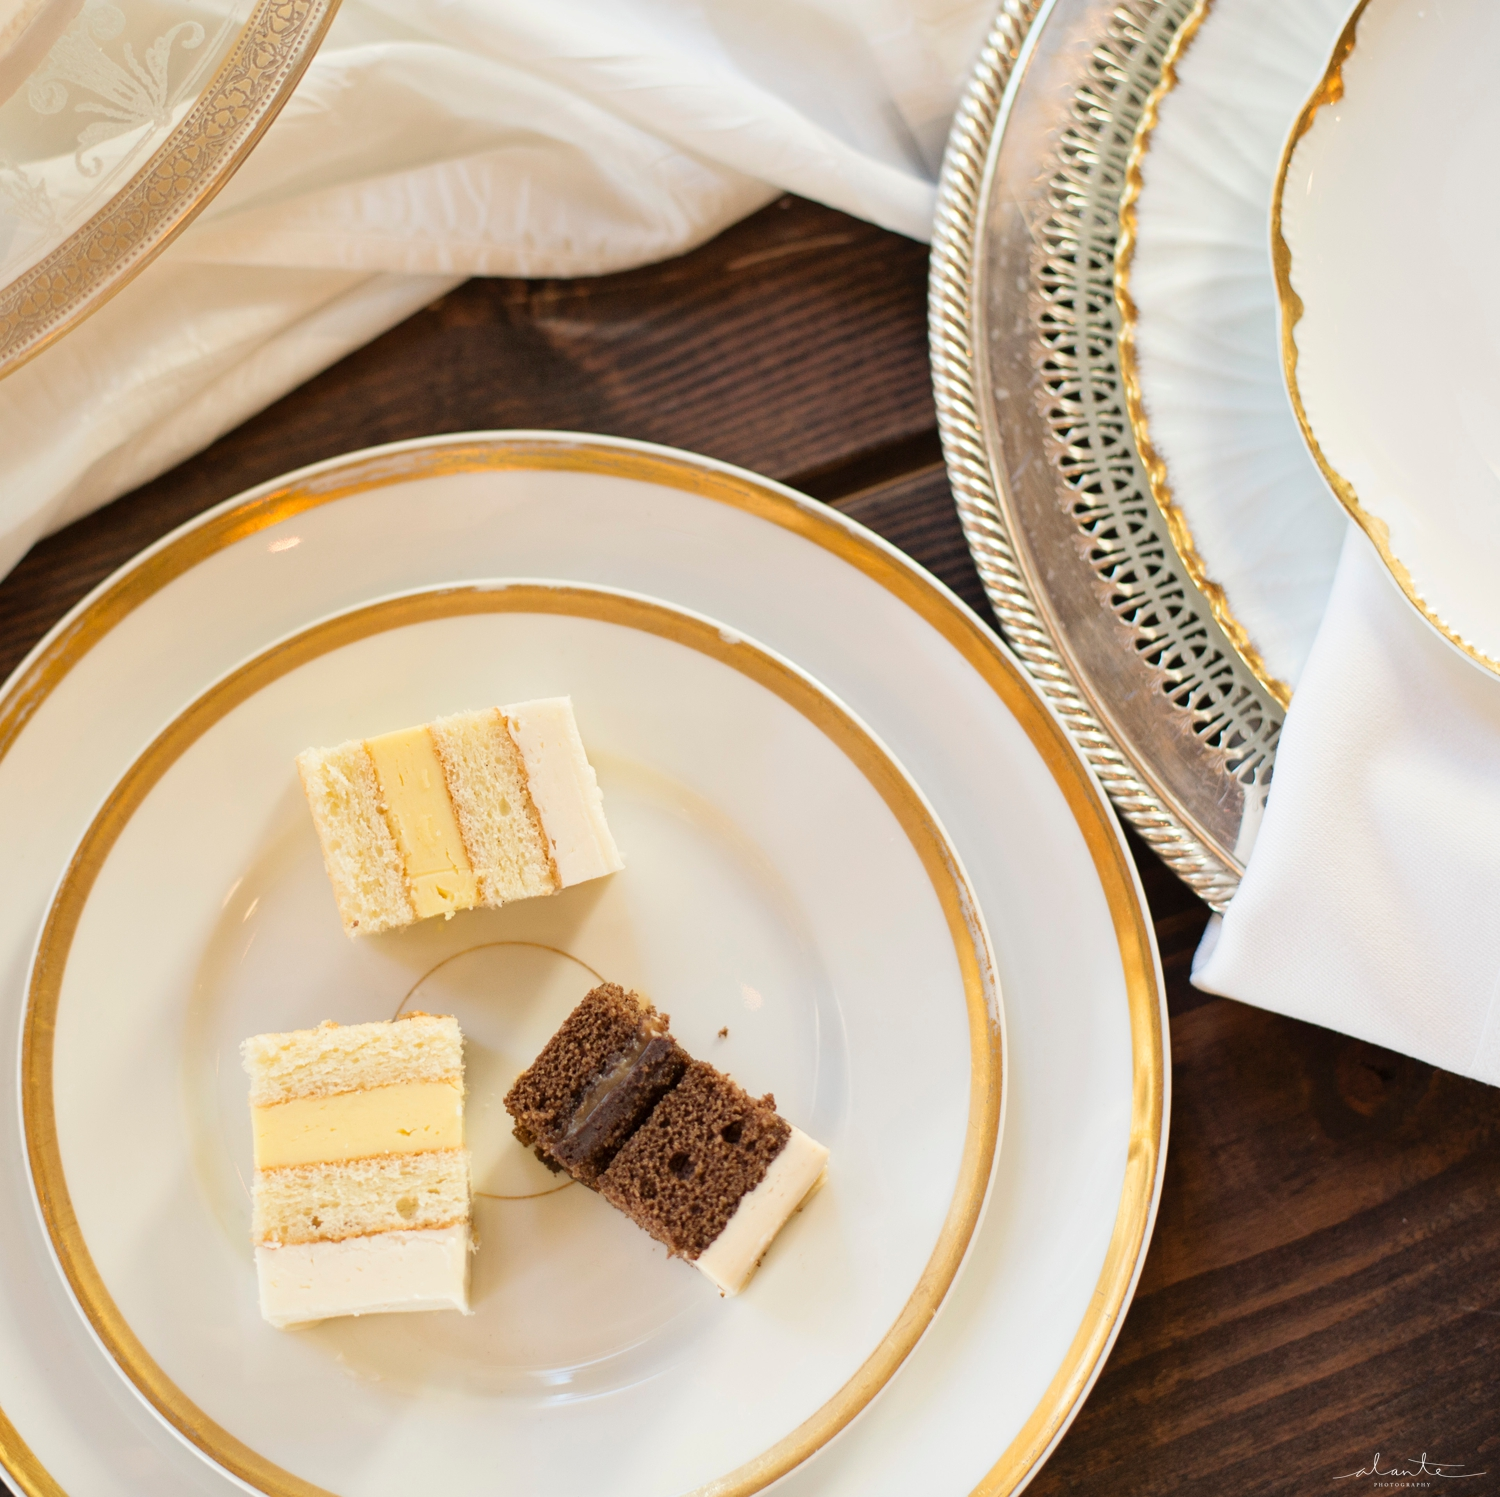 www.alantephotography.com | Cake slices on vintage gold plates | Lilac Cake Boutique | Alante Photography